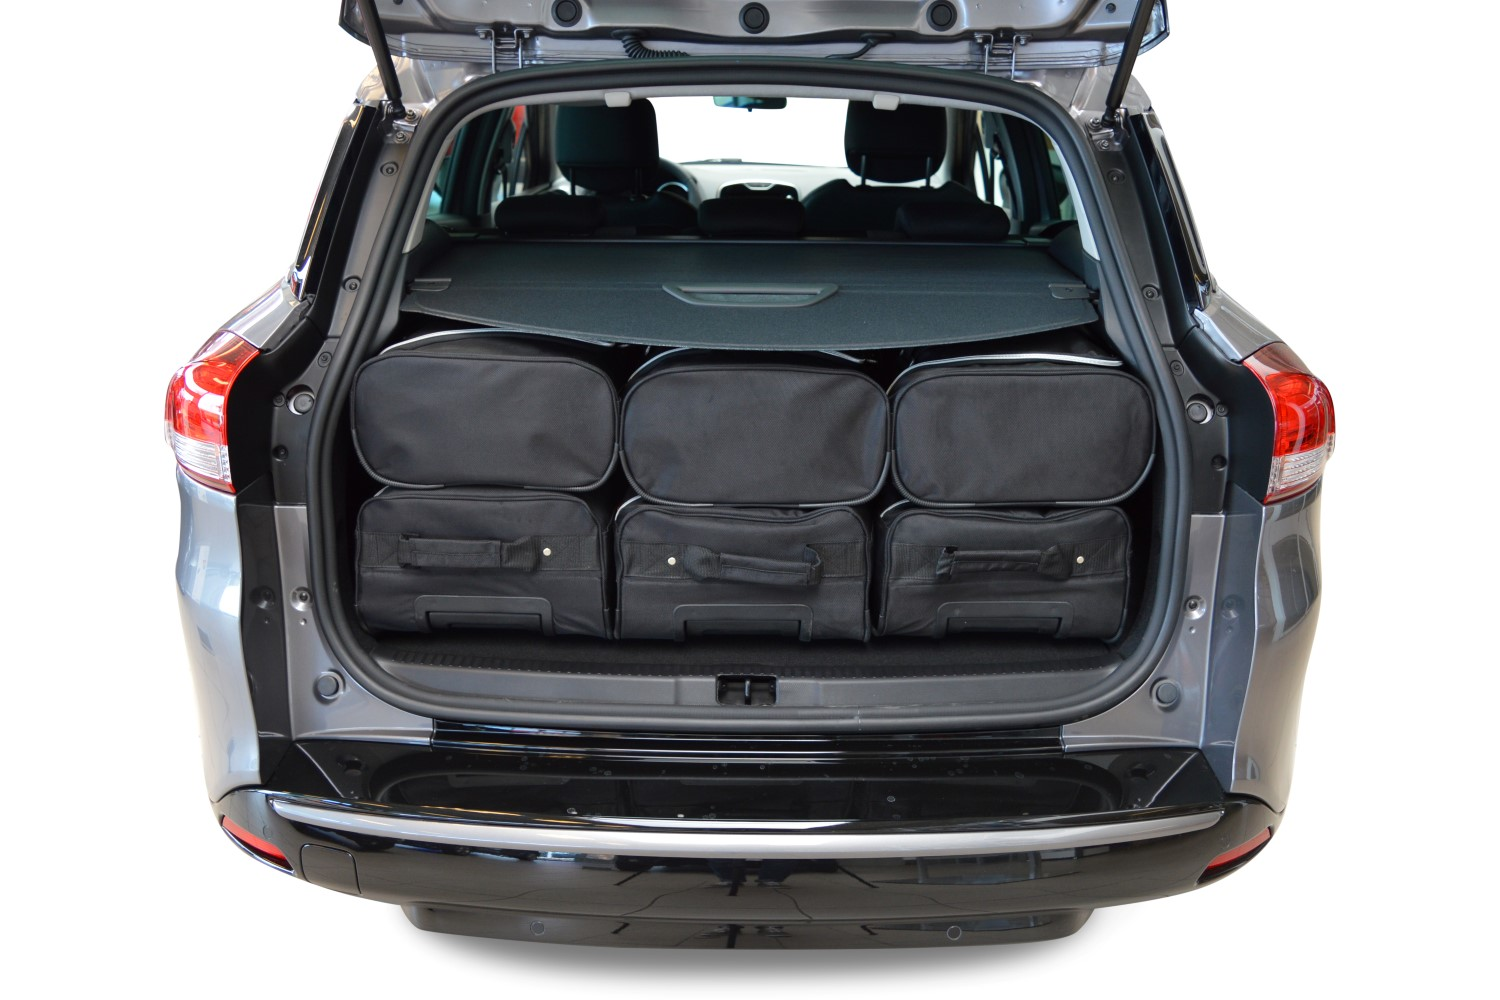 clio renault clio iv estate grandtour 2013 heden car bags reistassenset. Black Bedroom Furniture Sets. Home Design Ideas